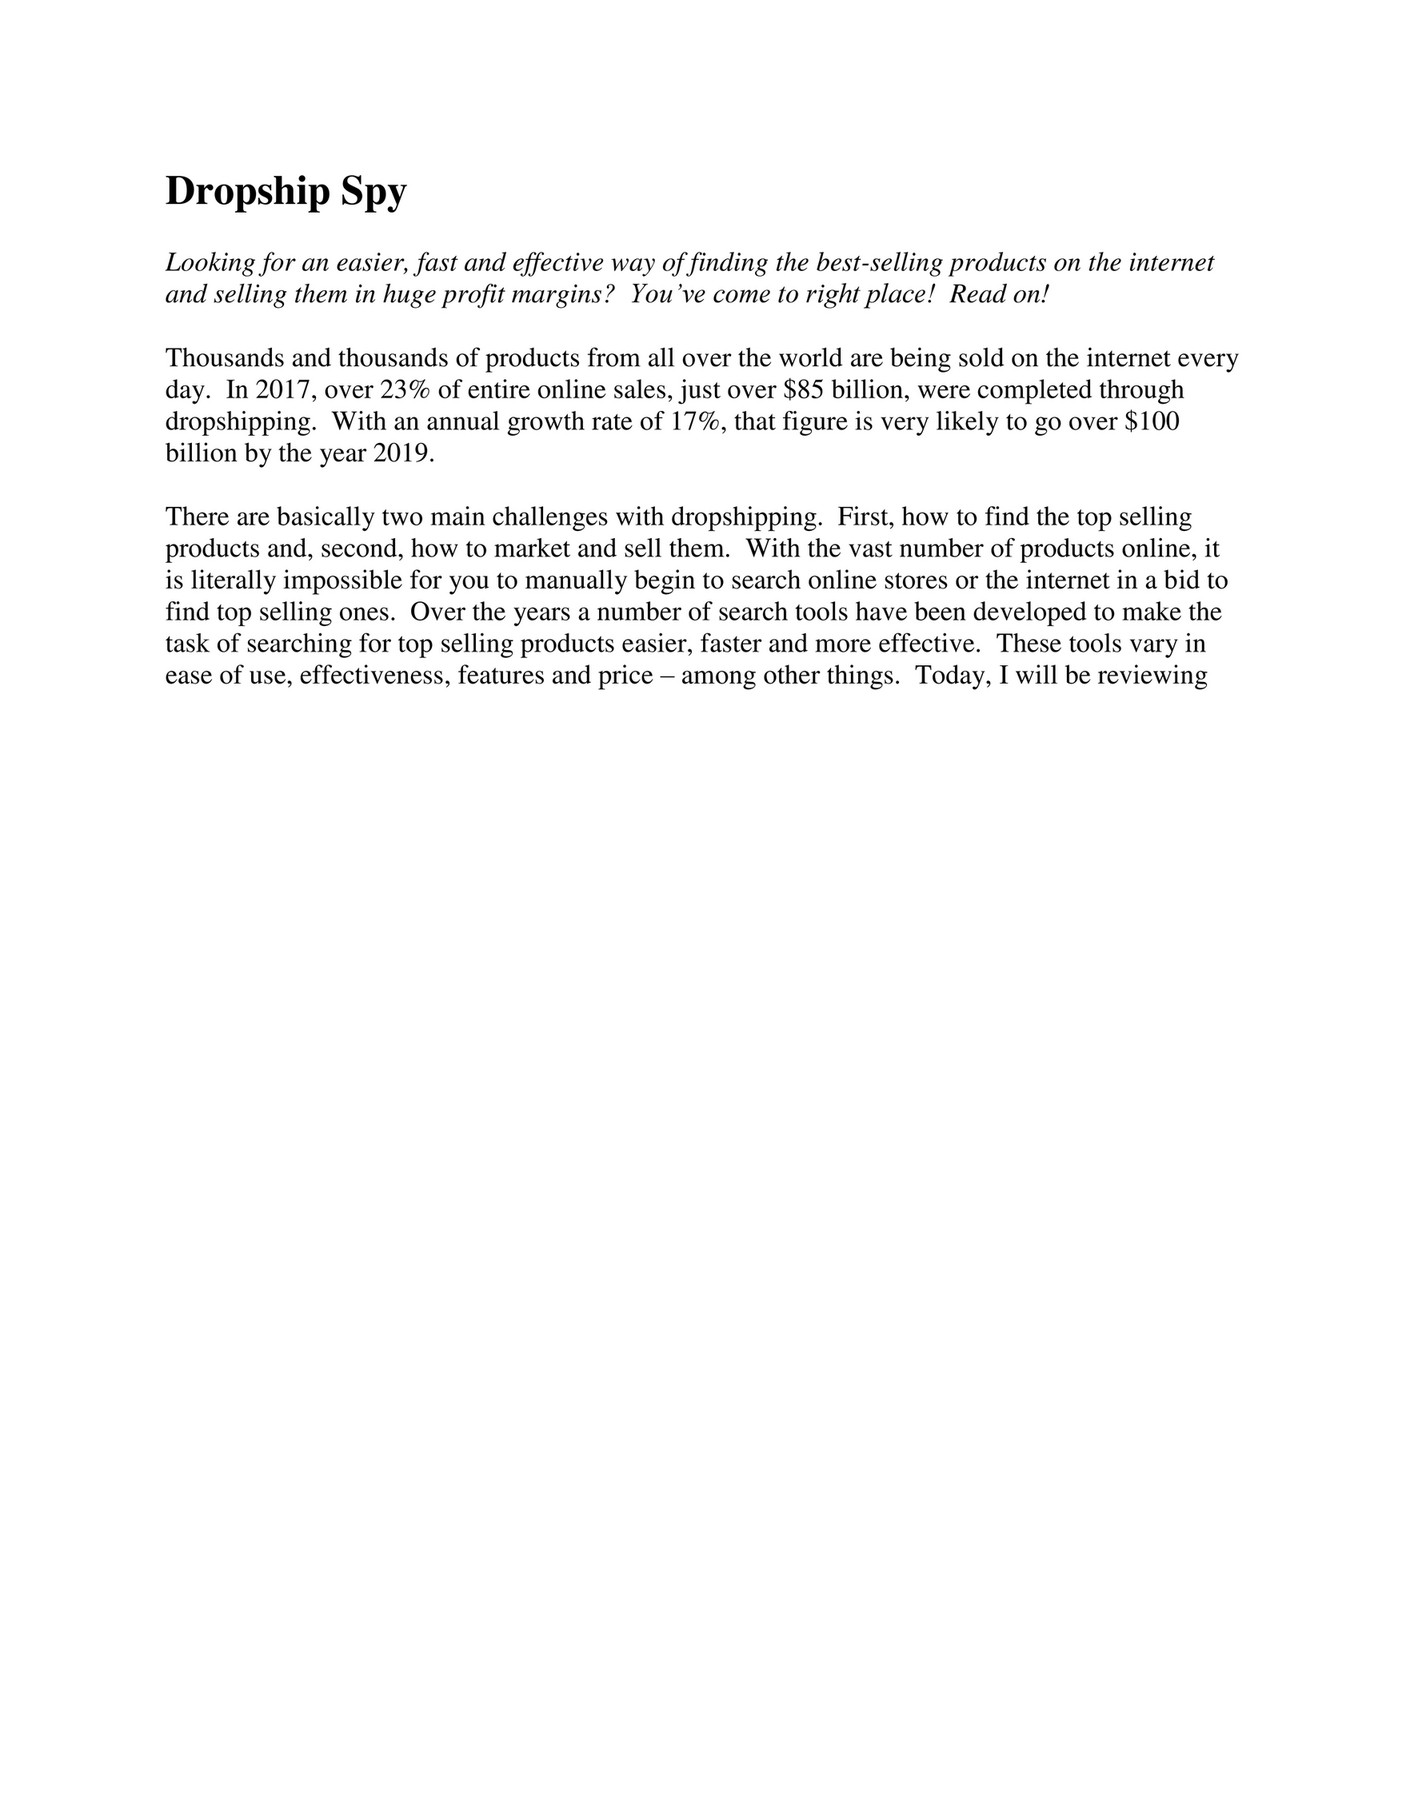 My publications - Dropship Spy Review - Page 1 - Created